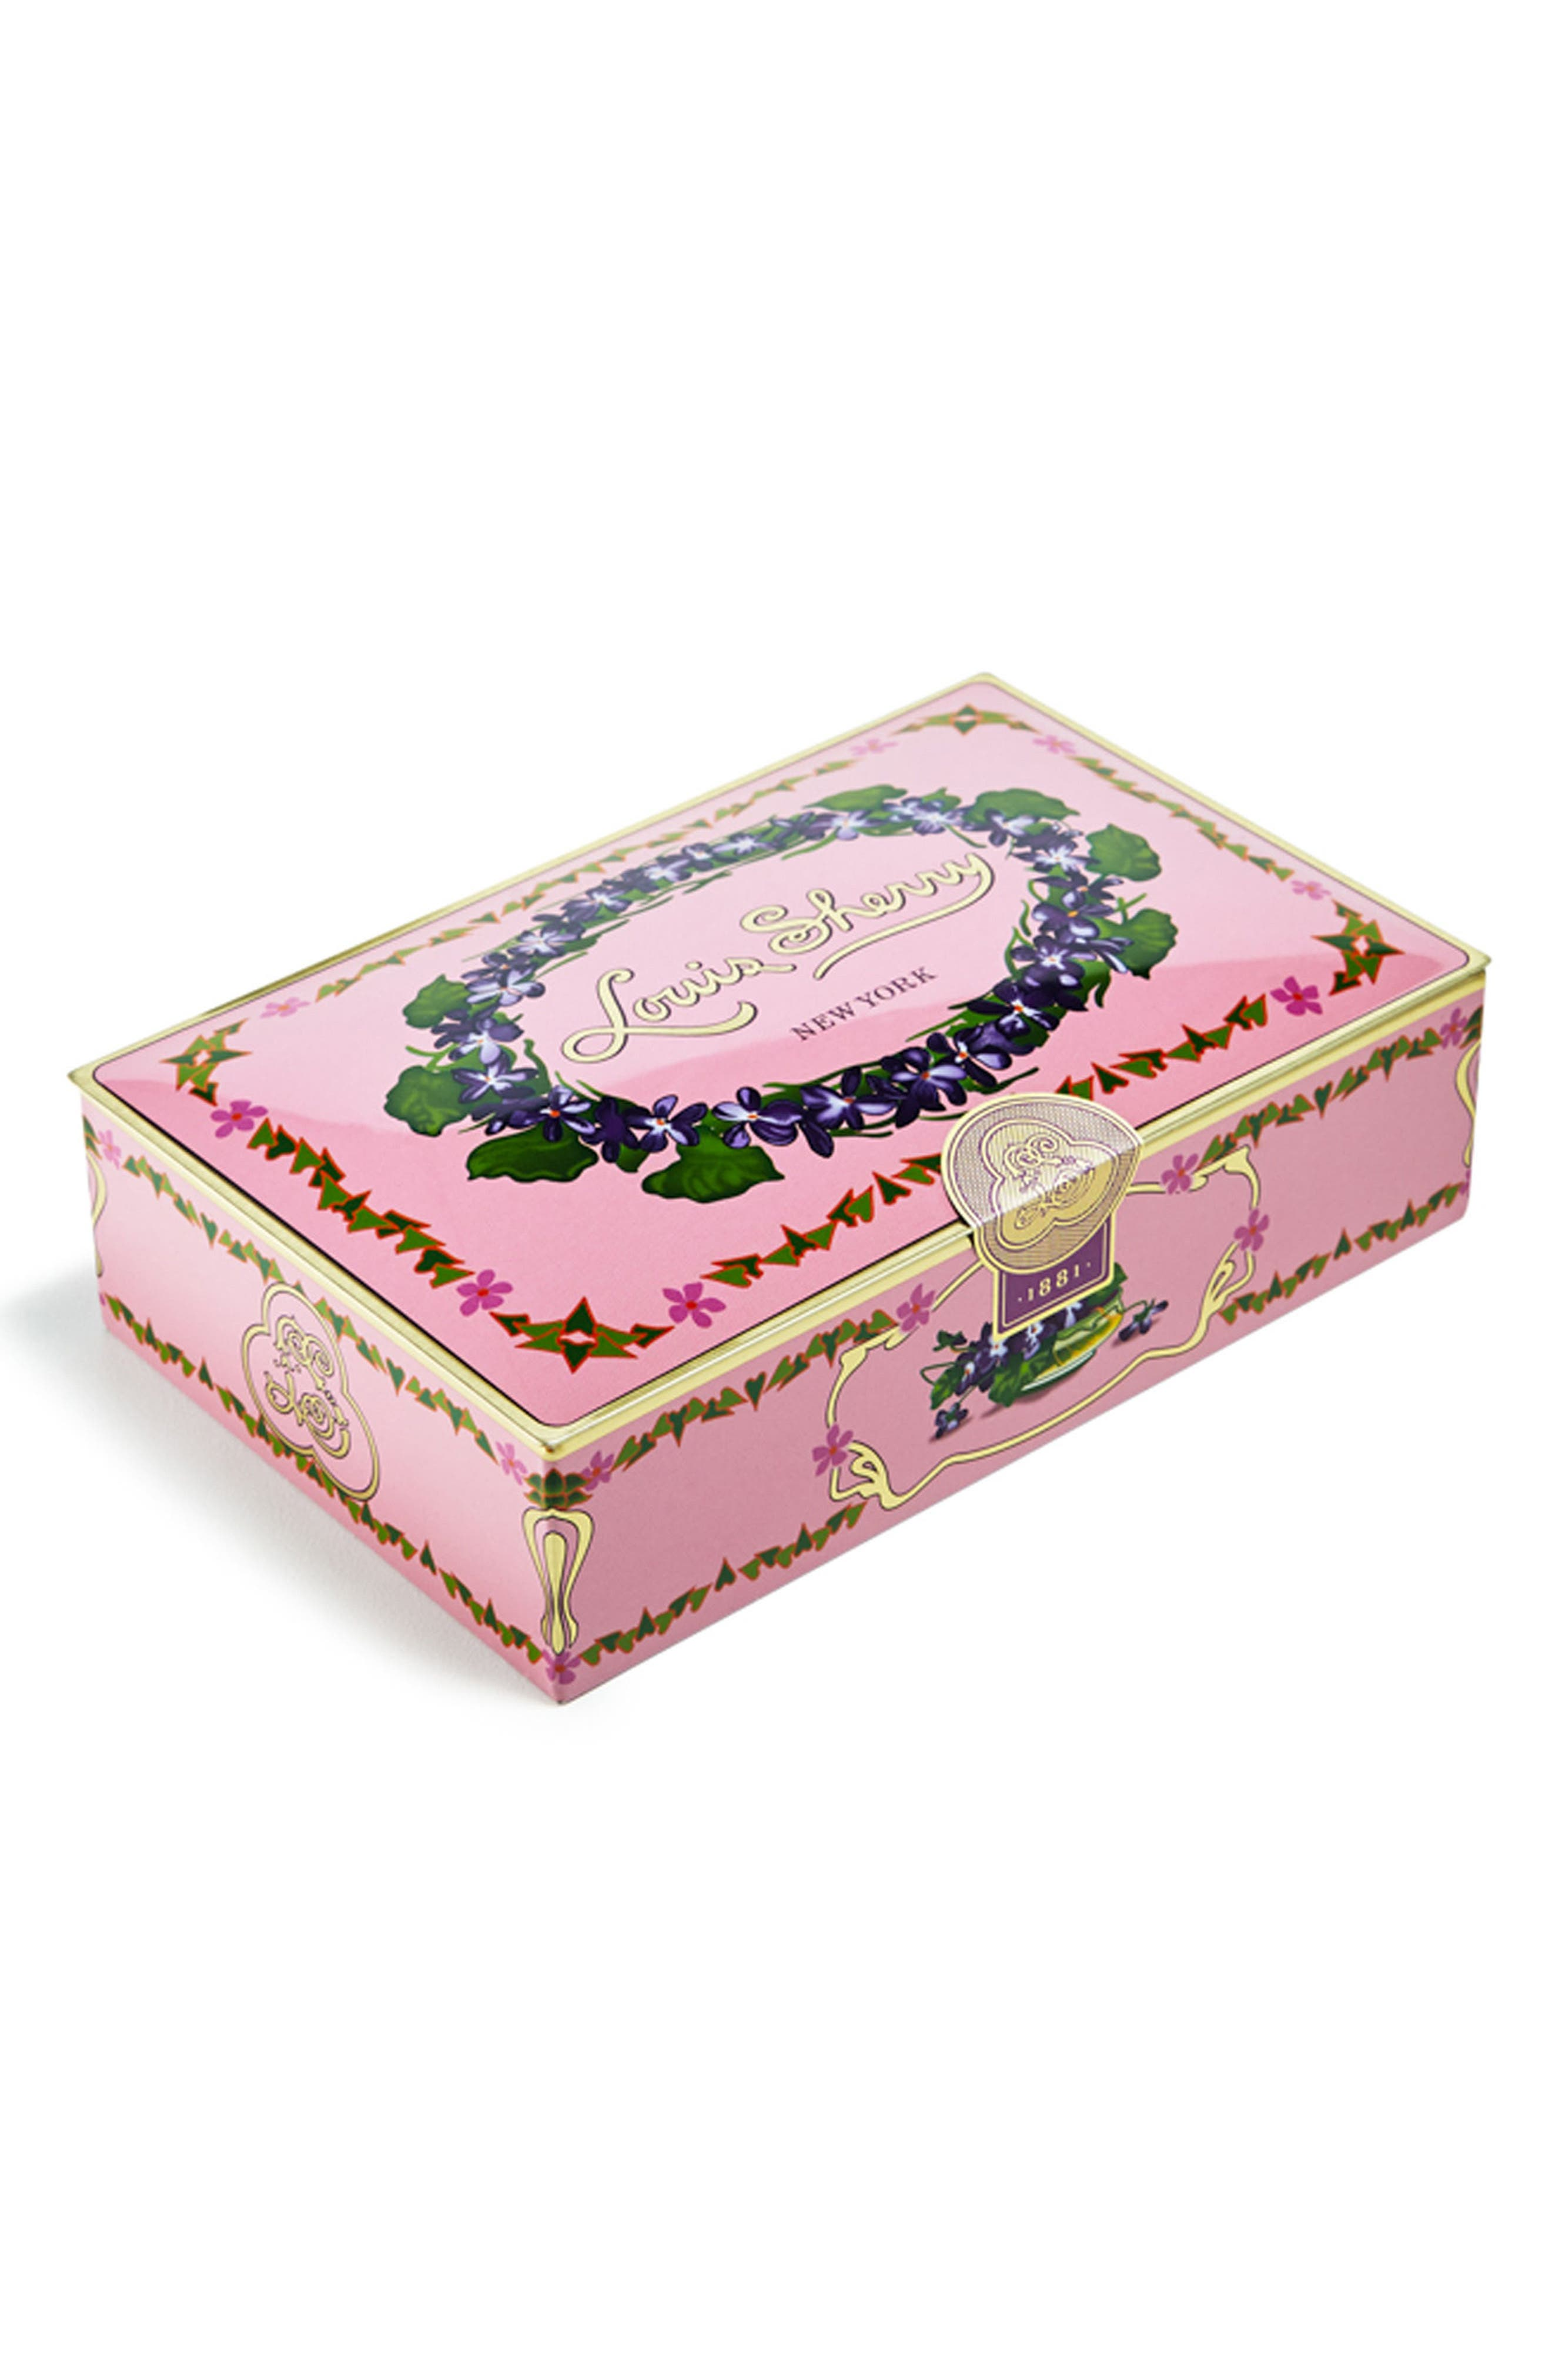 Louis Sherry Orchid 12-Piece Chocolate Truffle Tin,                         Main,                         color, PINK WITH CIRCLE OF VIOLETS